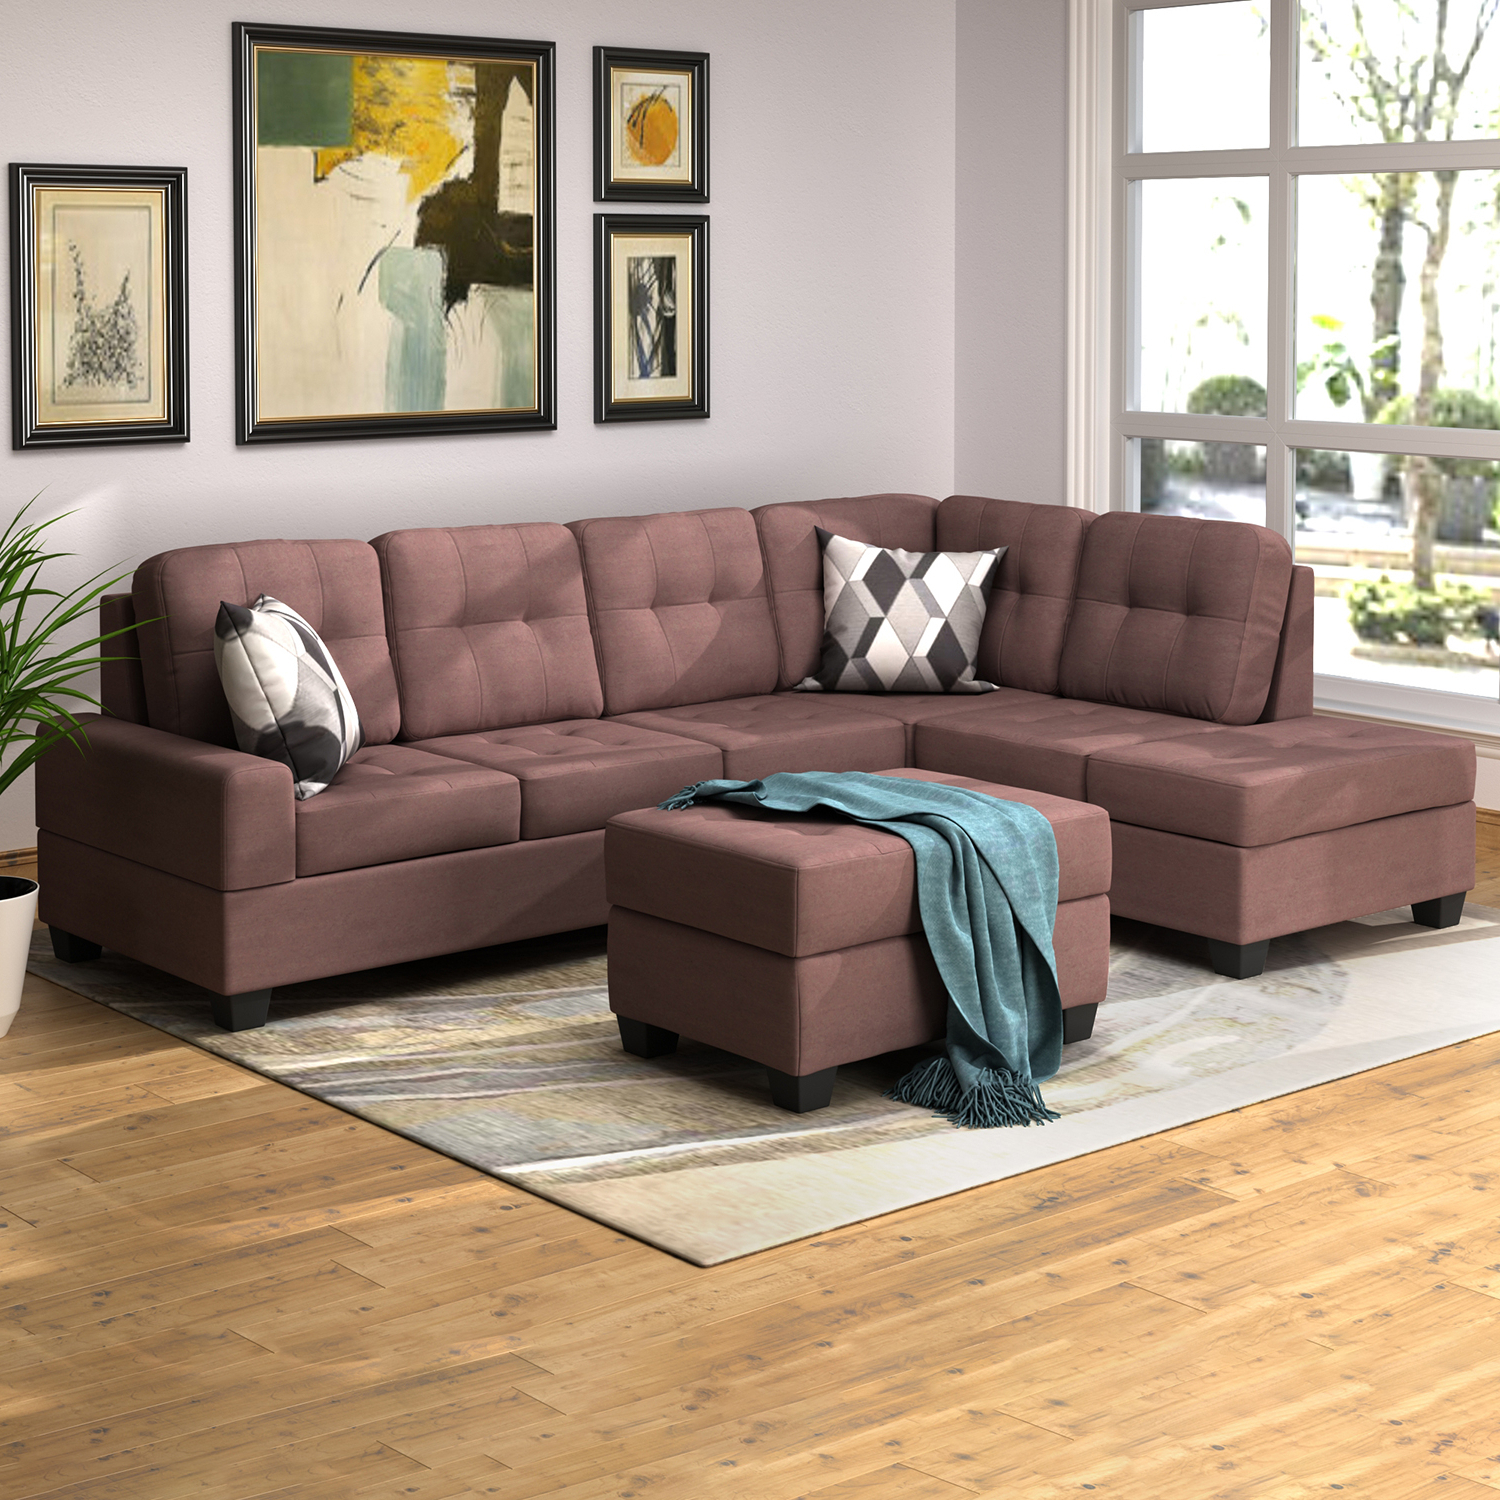 3 Piece Sectional Sofa Microfiber With Reversible Chaise With Regard To Most Popular 3pc Miles Leather Sectional Sofas With Chaise (View 4 of 20)